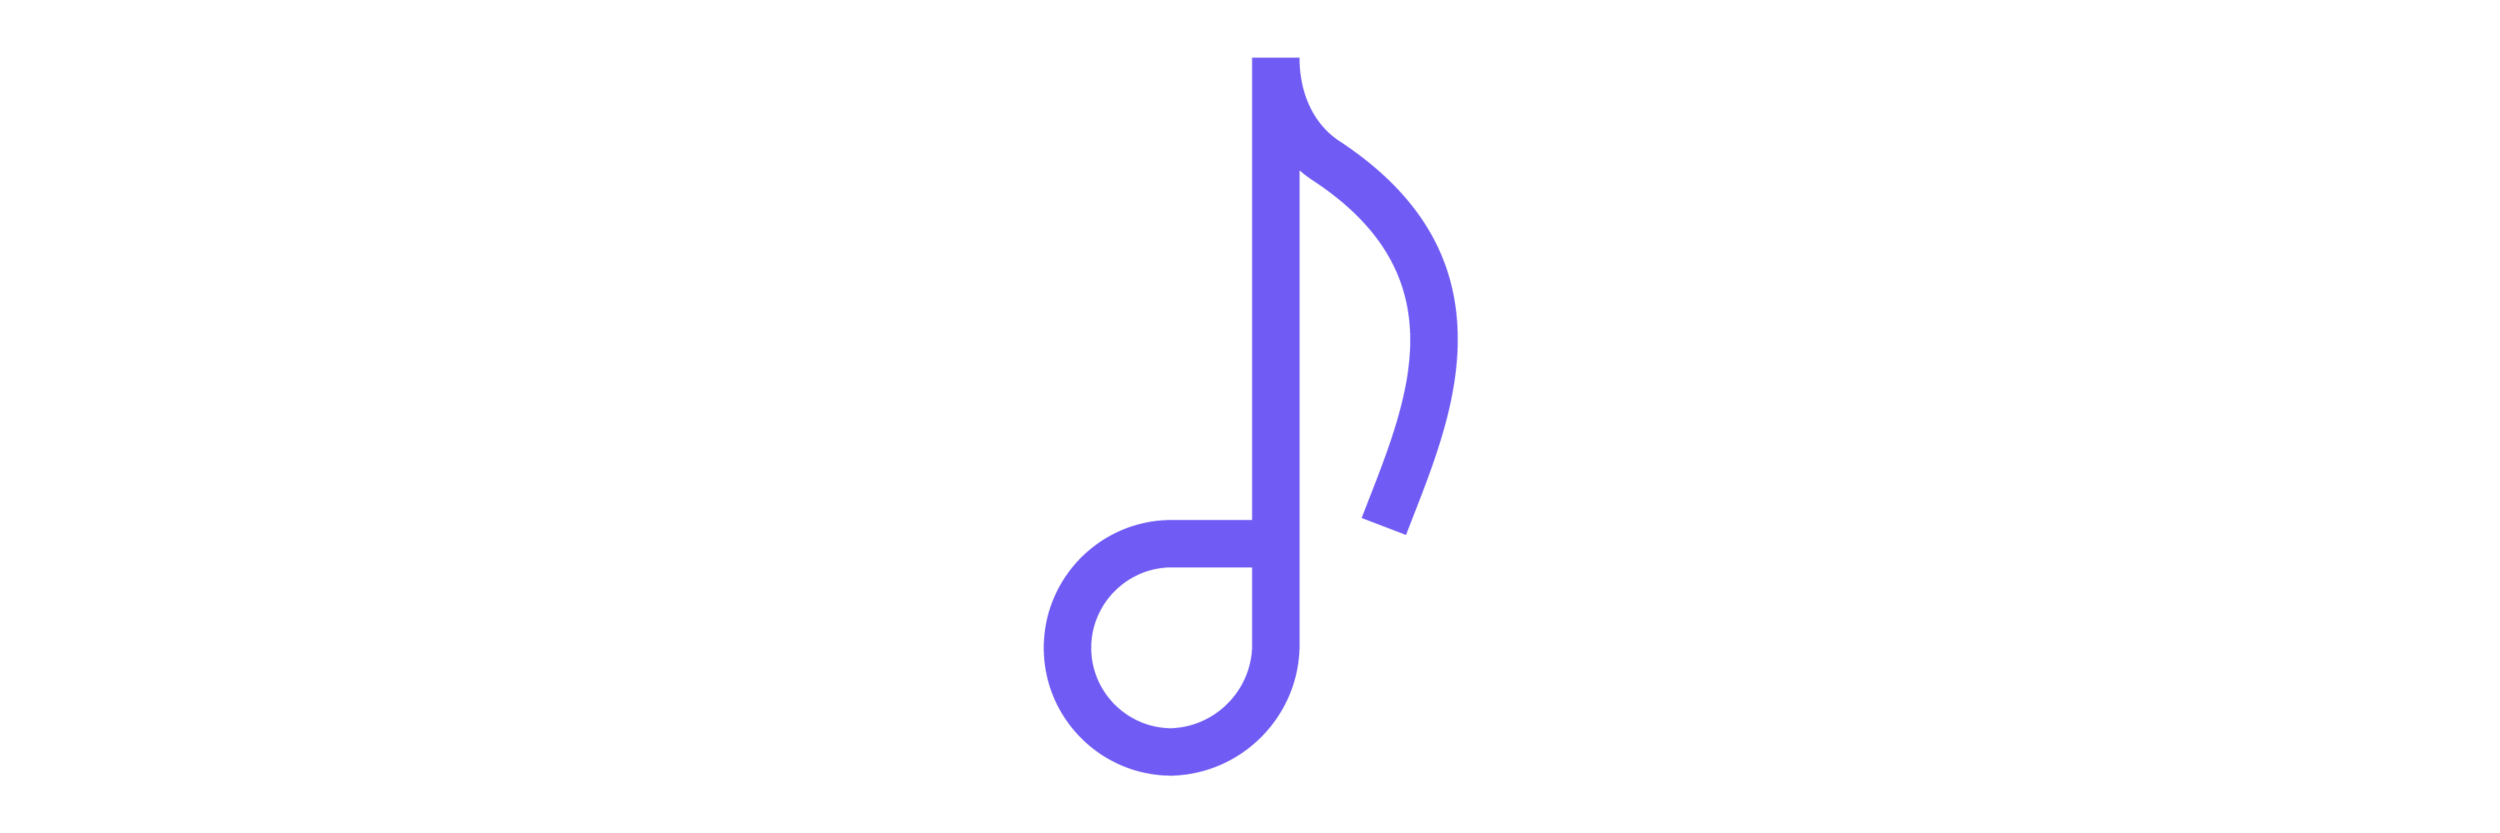 music-3000.png